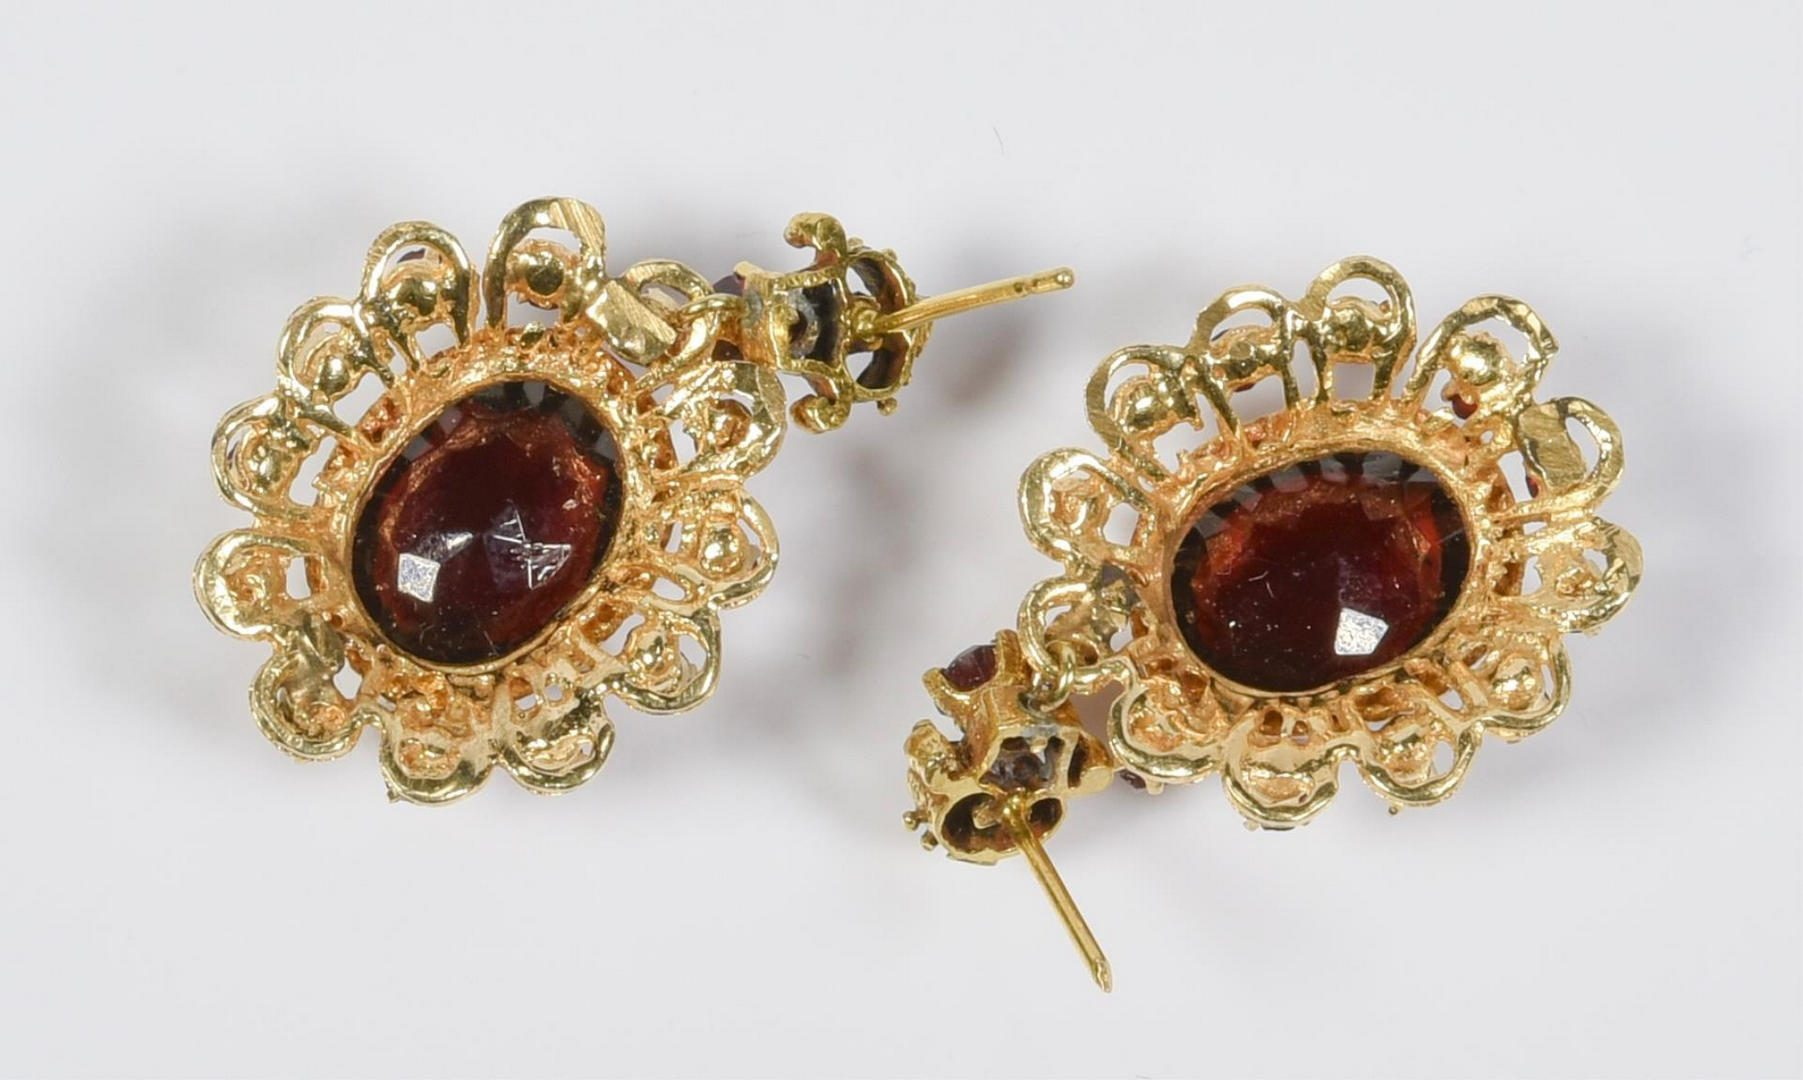 Lot 212: 8 Items of Jewelry